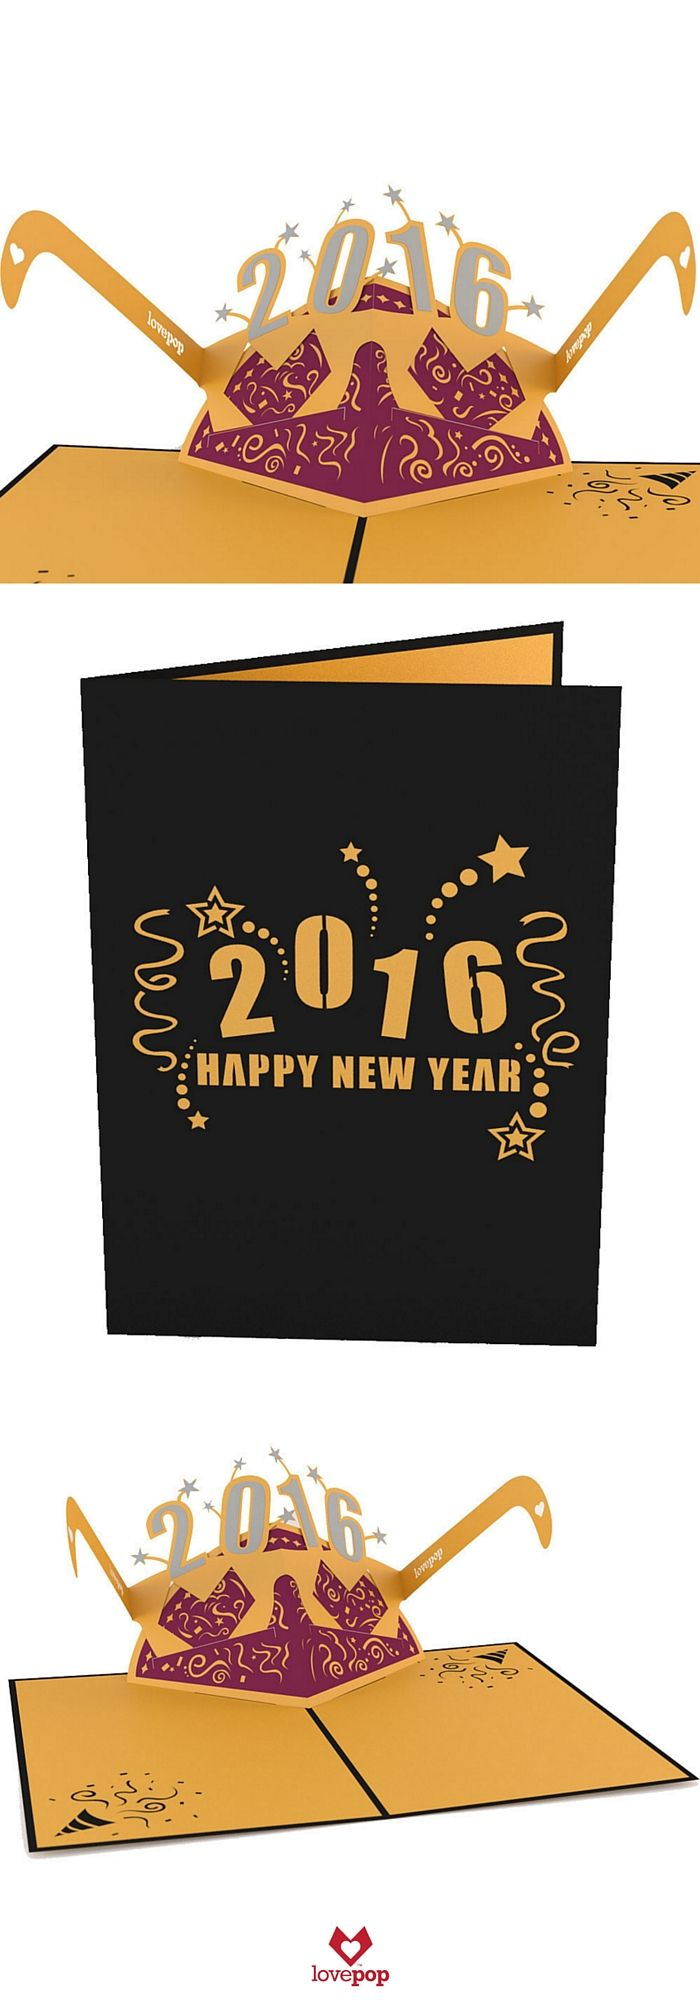 Say Happy New Year with this fun pop up card and removable